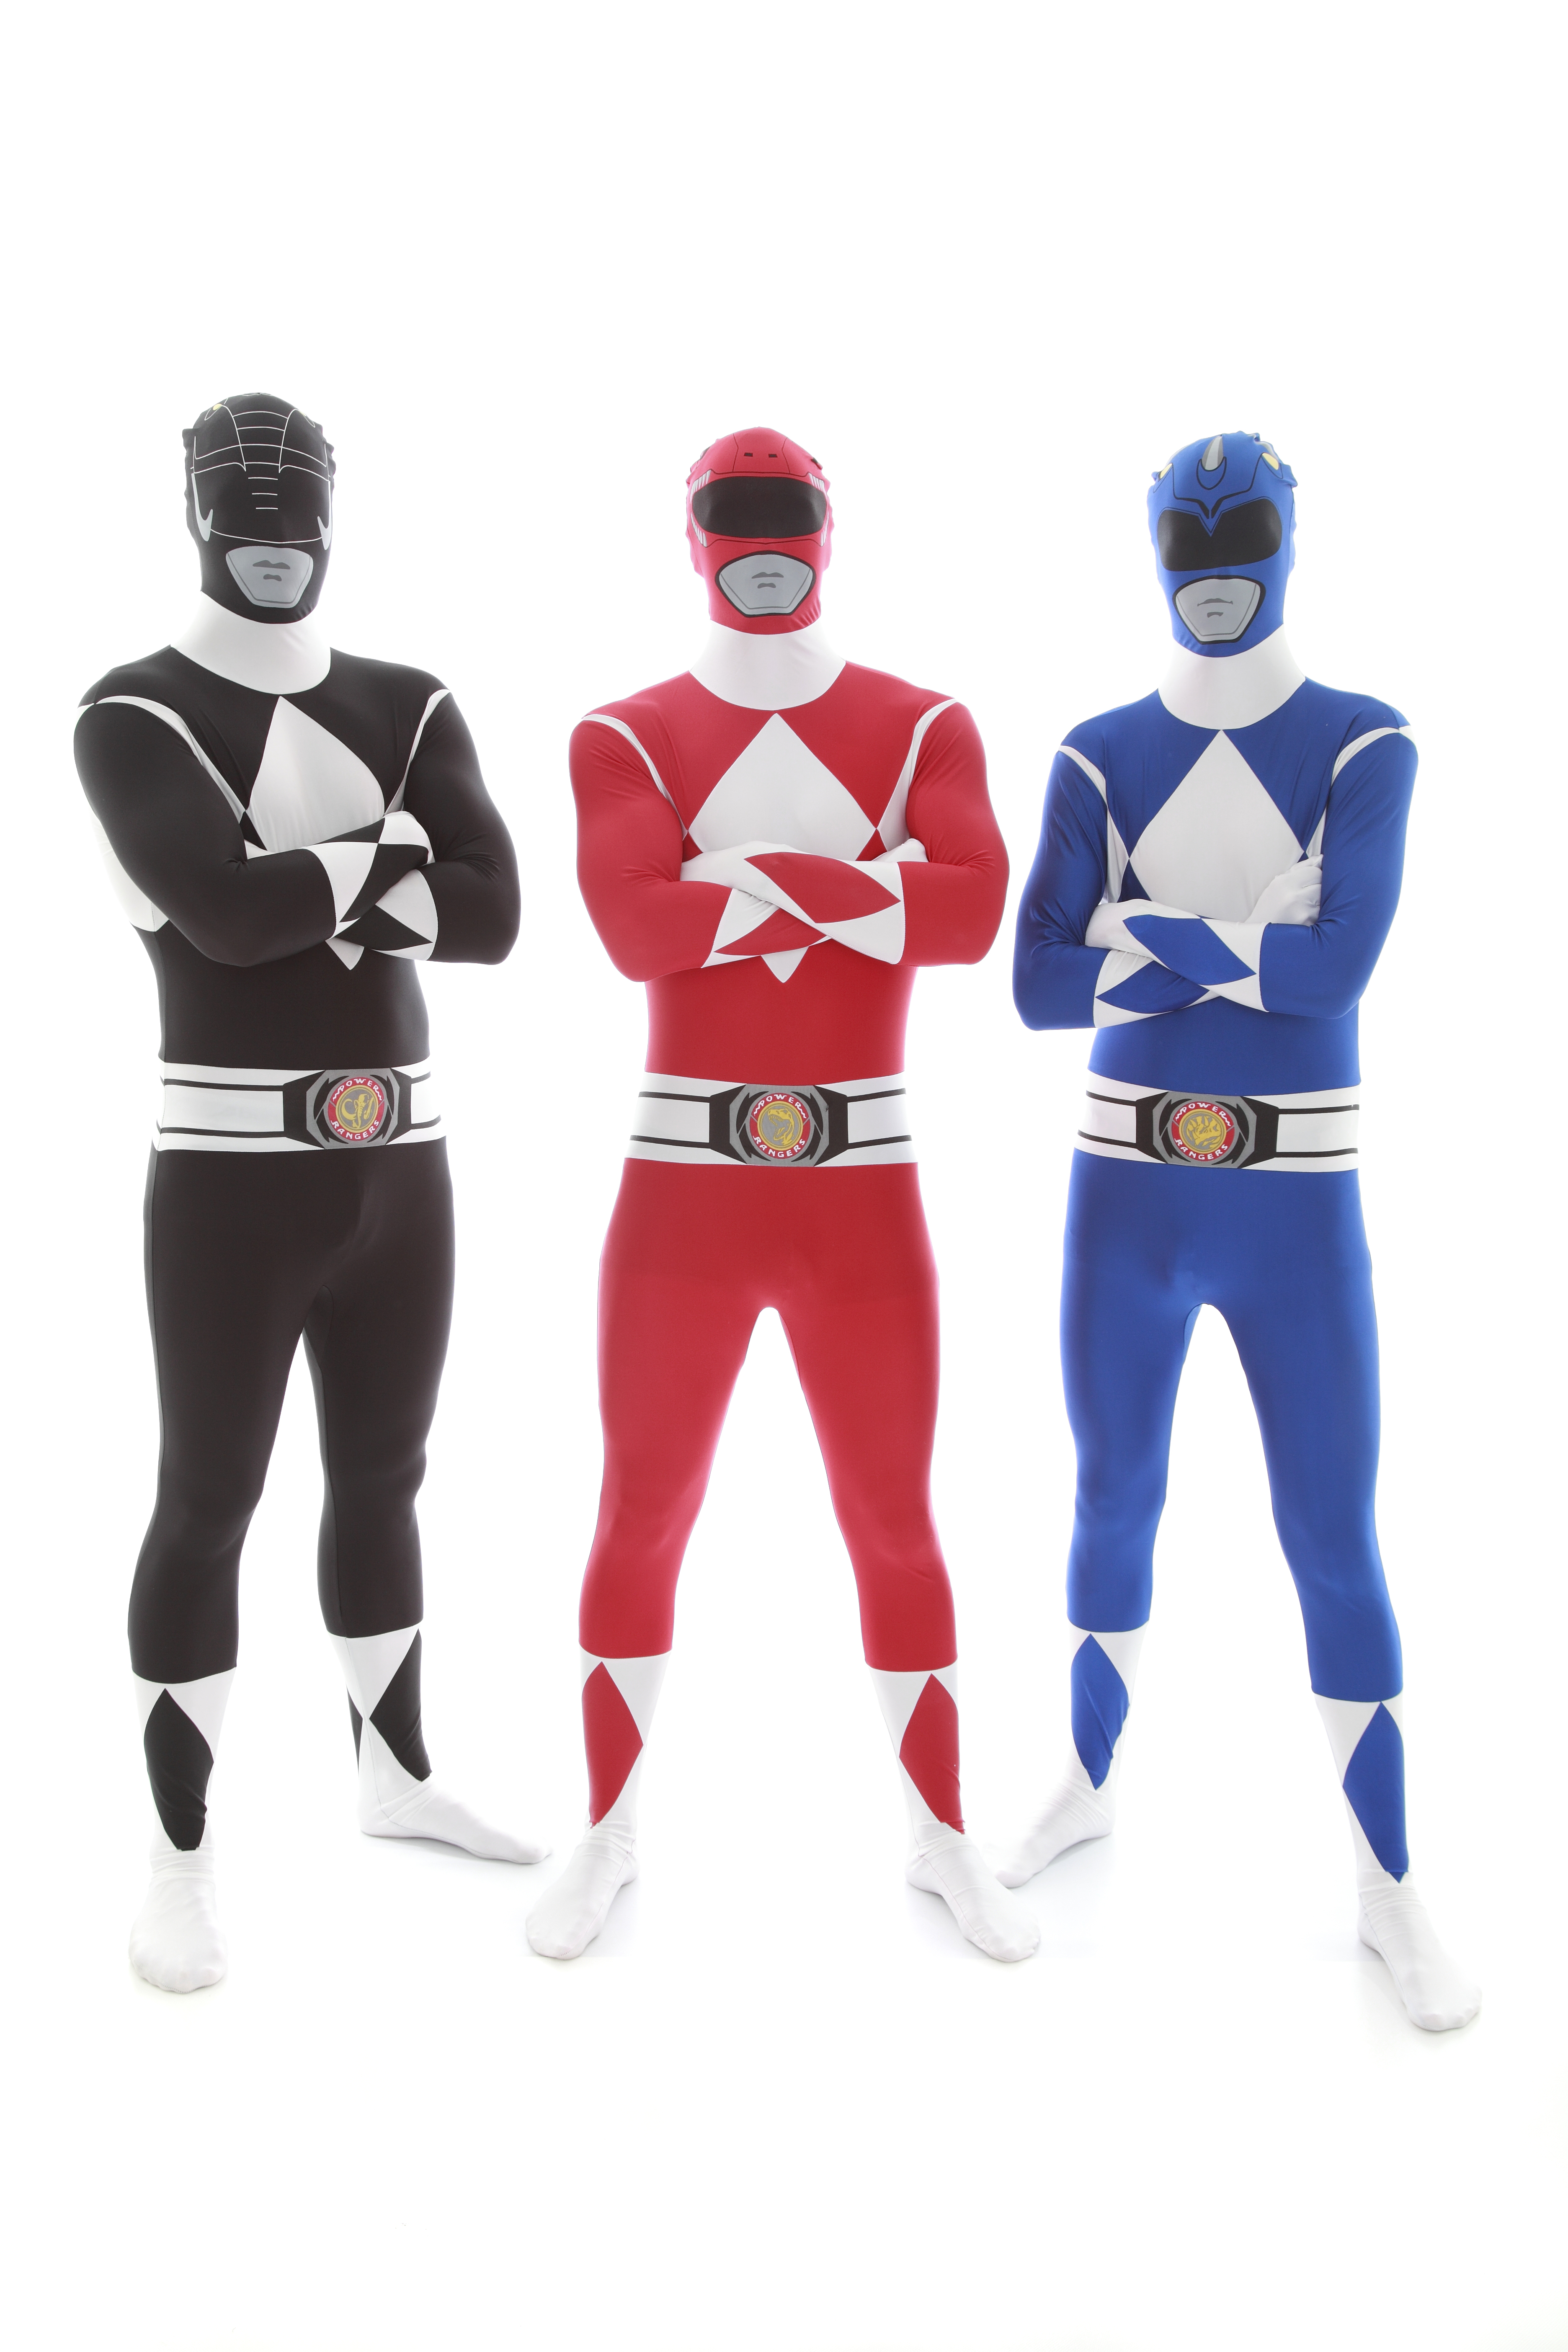 It's Morphin' Time for costume company as they launch best selling Power Ranger suits